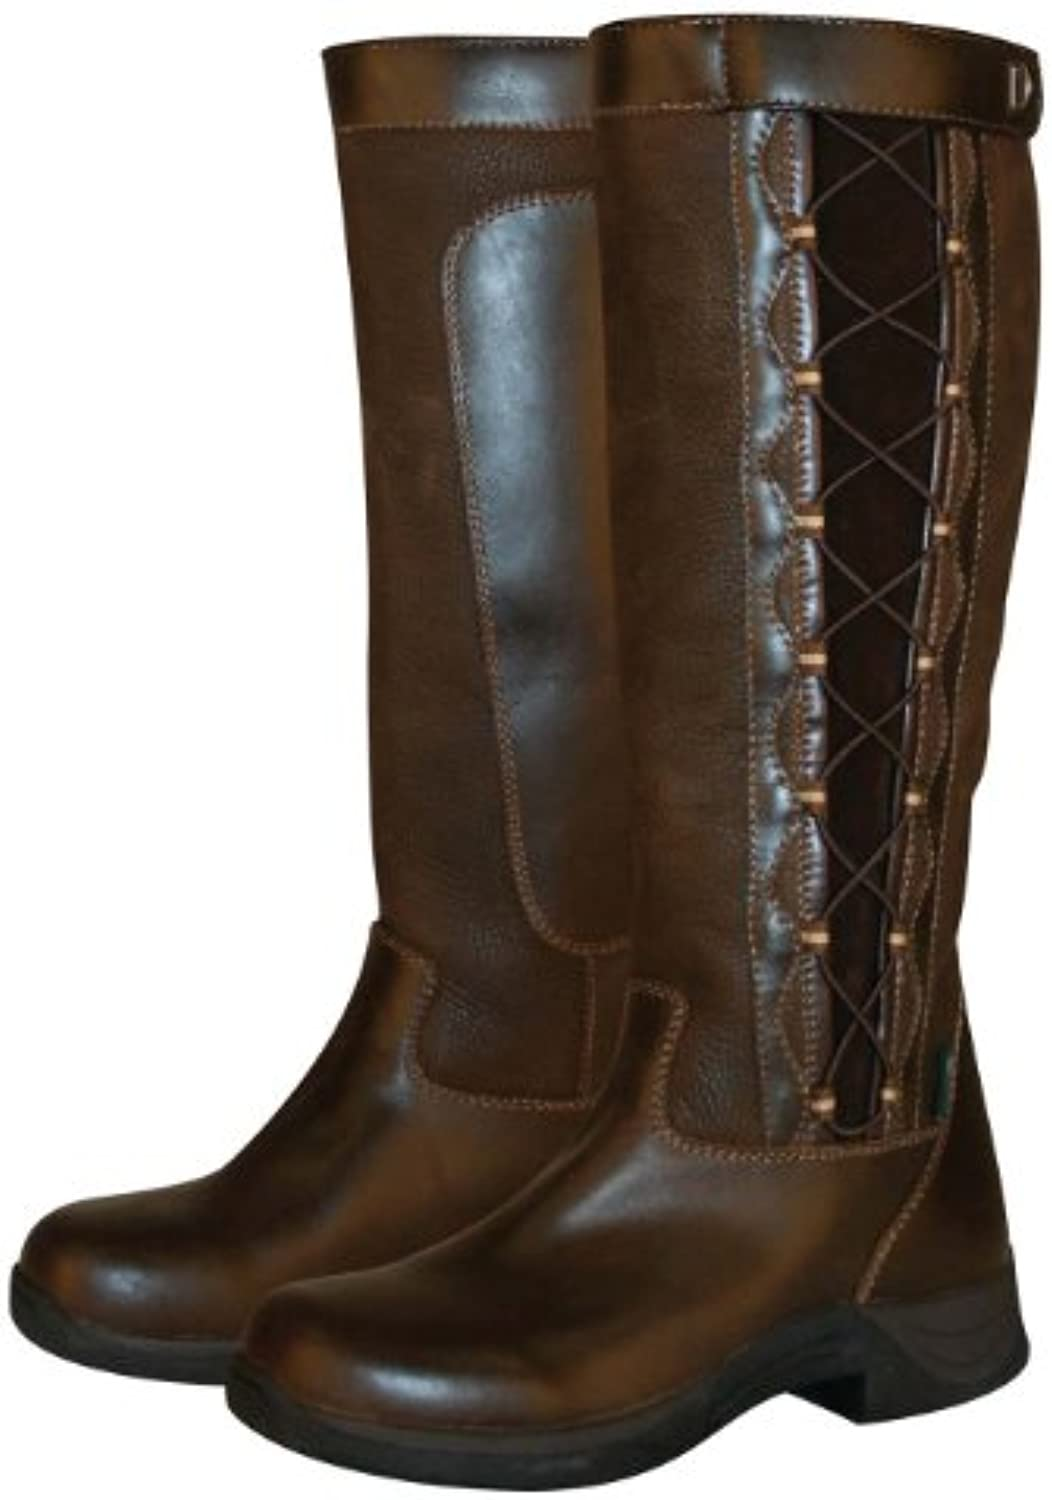 Dublin Pinnacle Botas, Unisex, Marrón Chocolate, 42  -